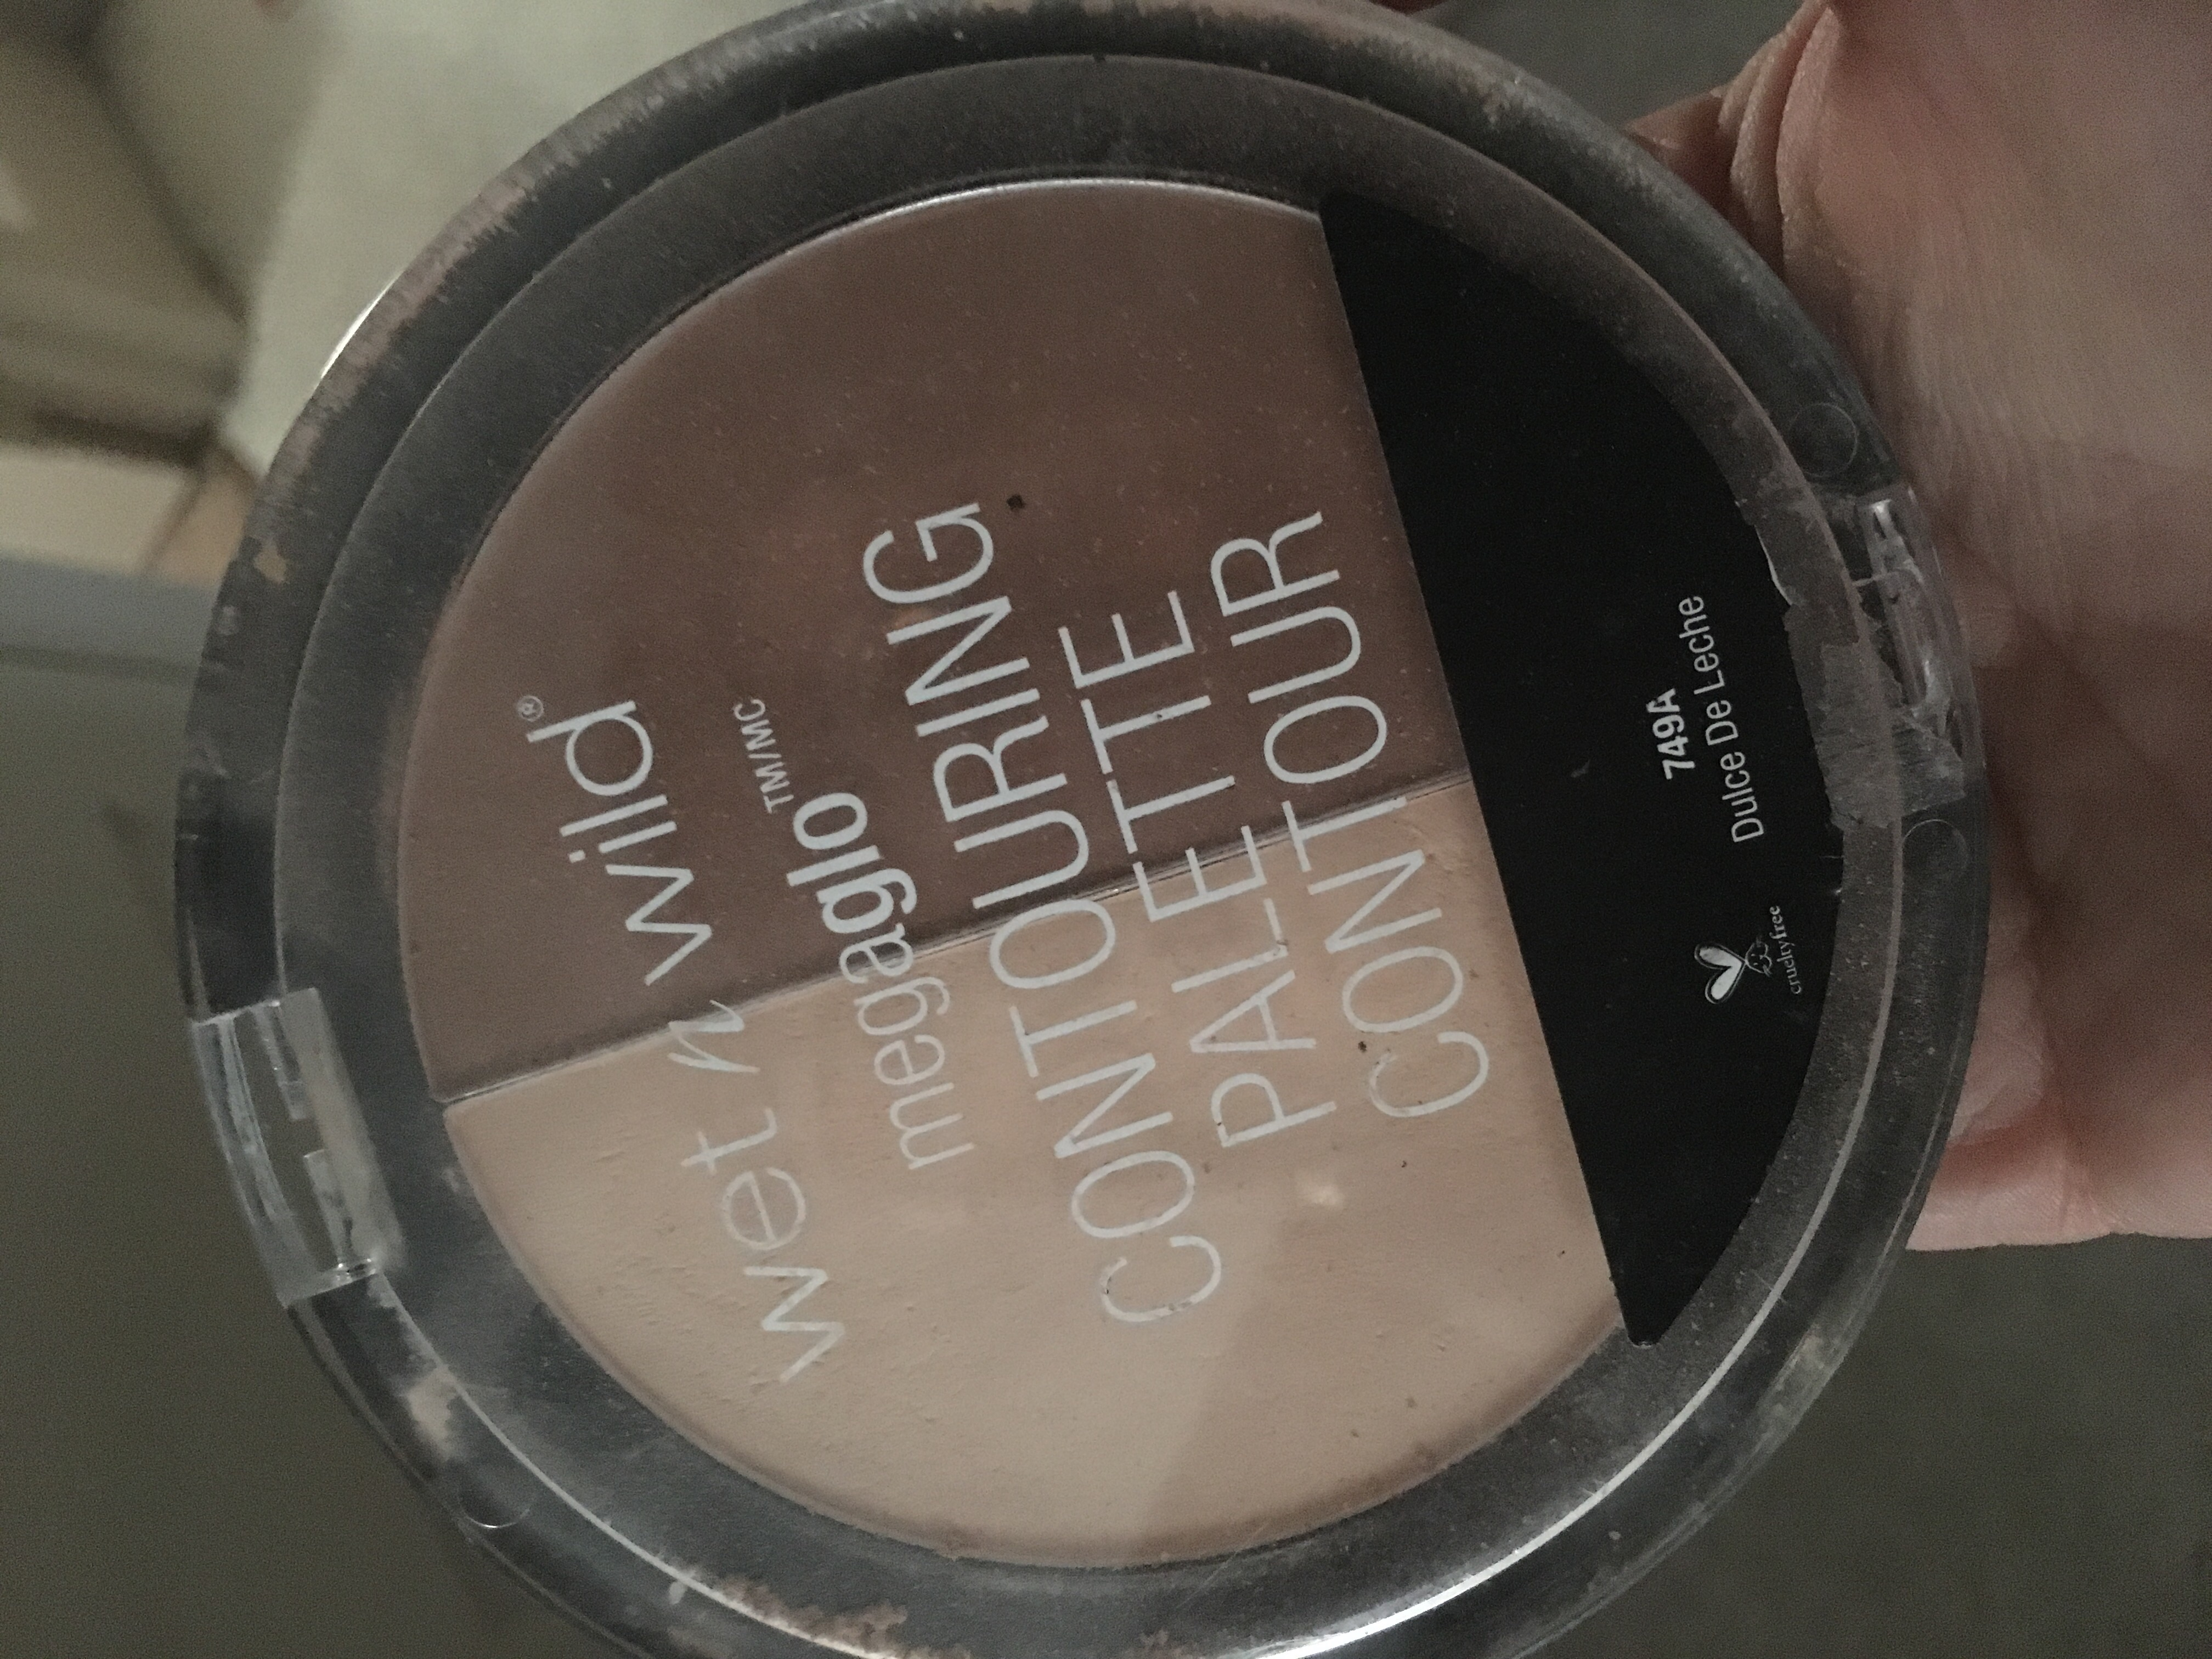 wet n wild MegaGlo Contouring Palette uploaded by Krista S.